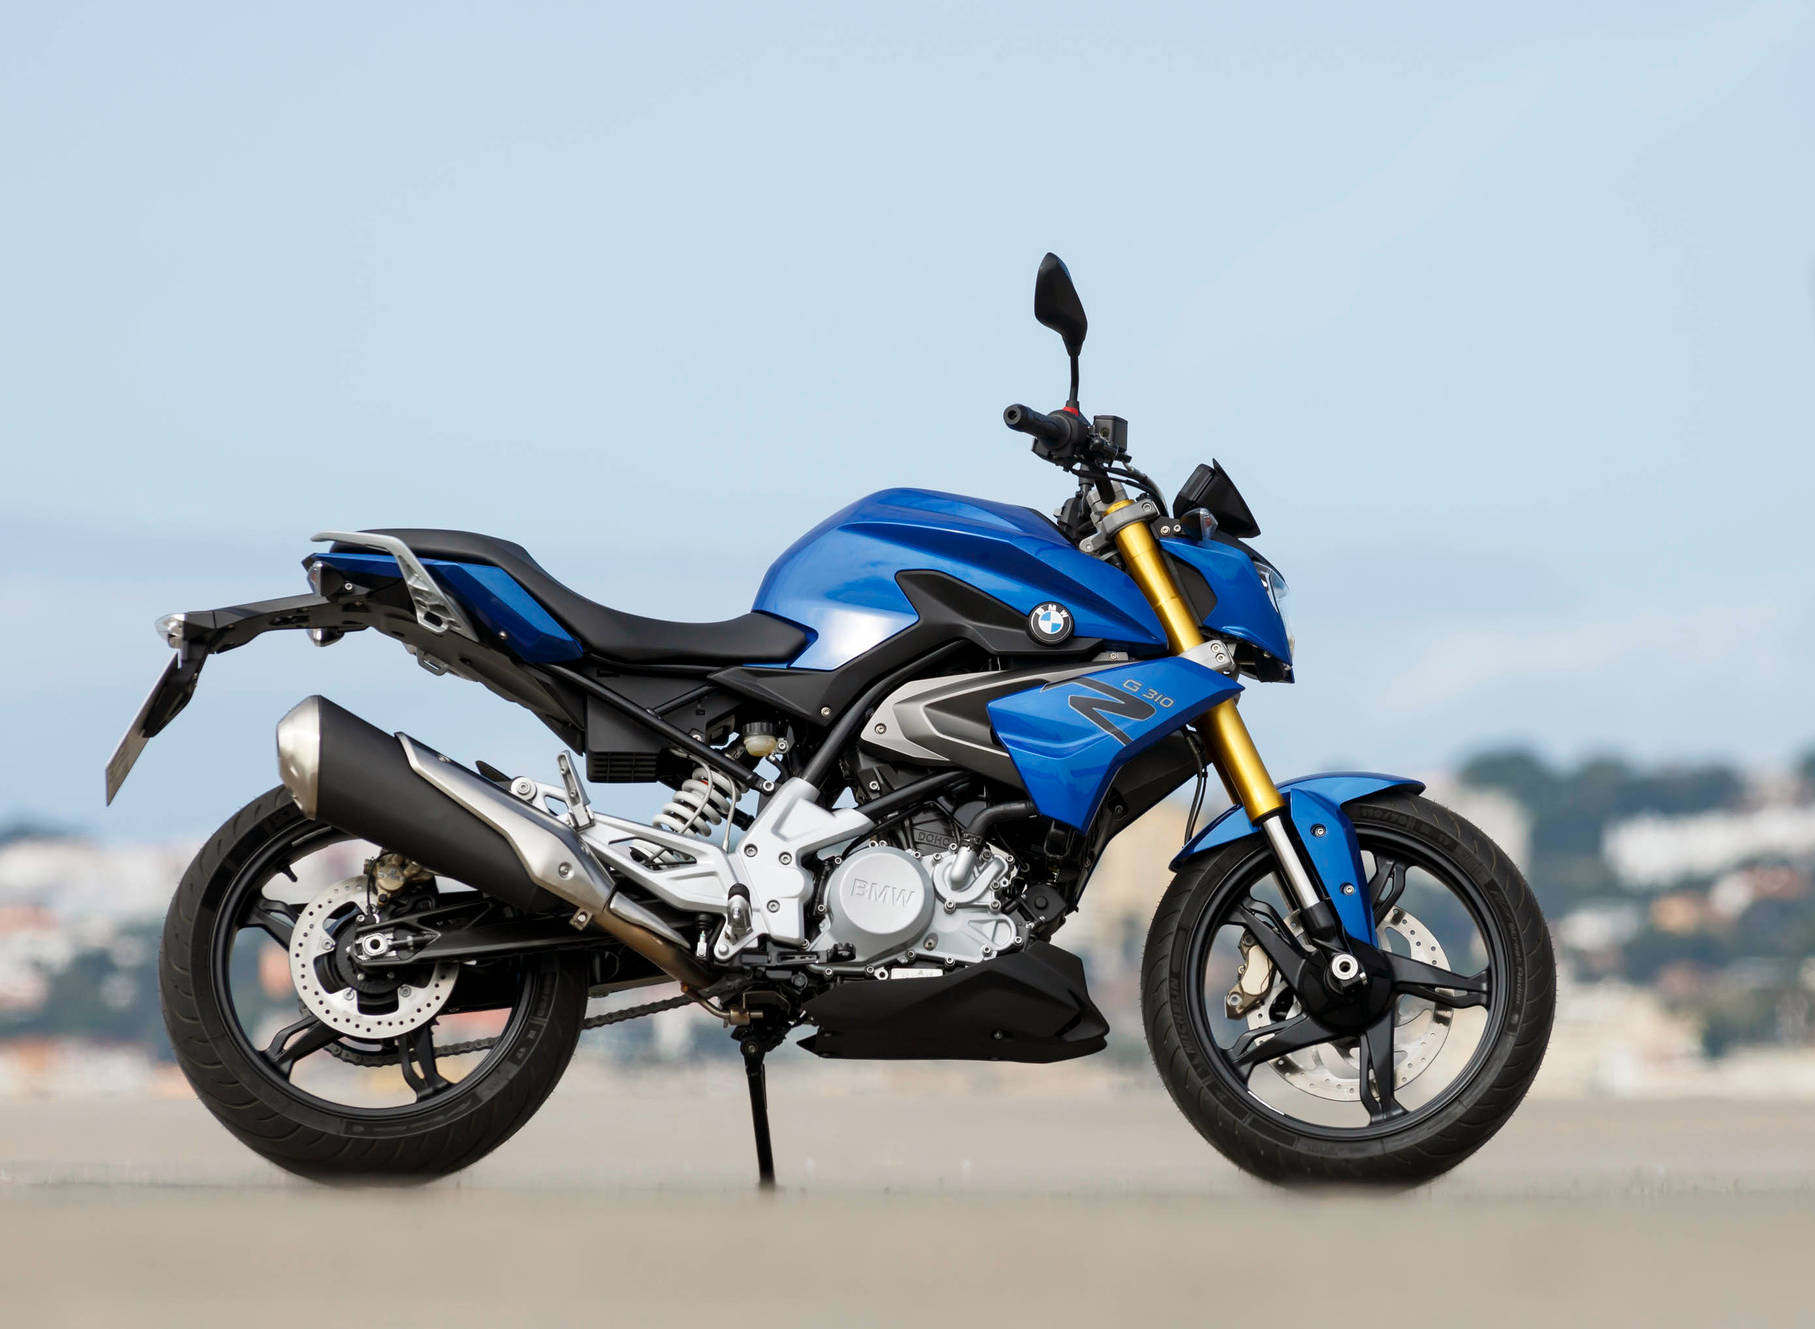 Bmw Delays The Bmw G310r Launch In The Indian Market